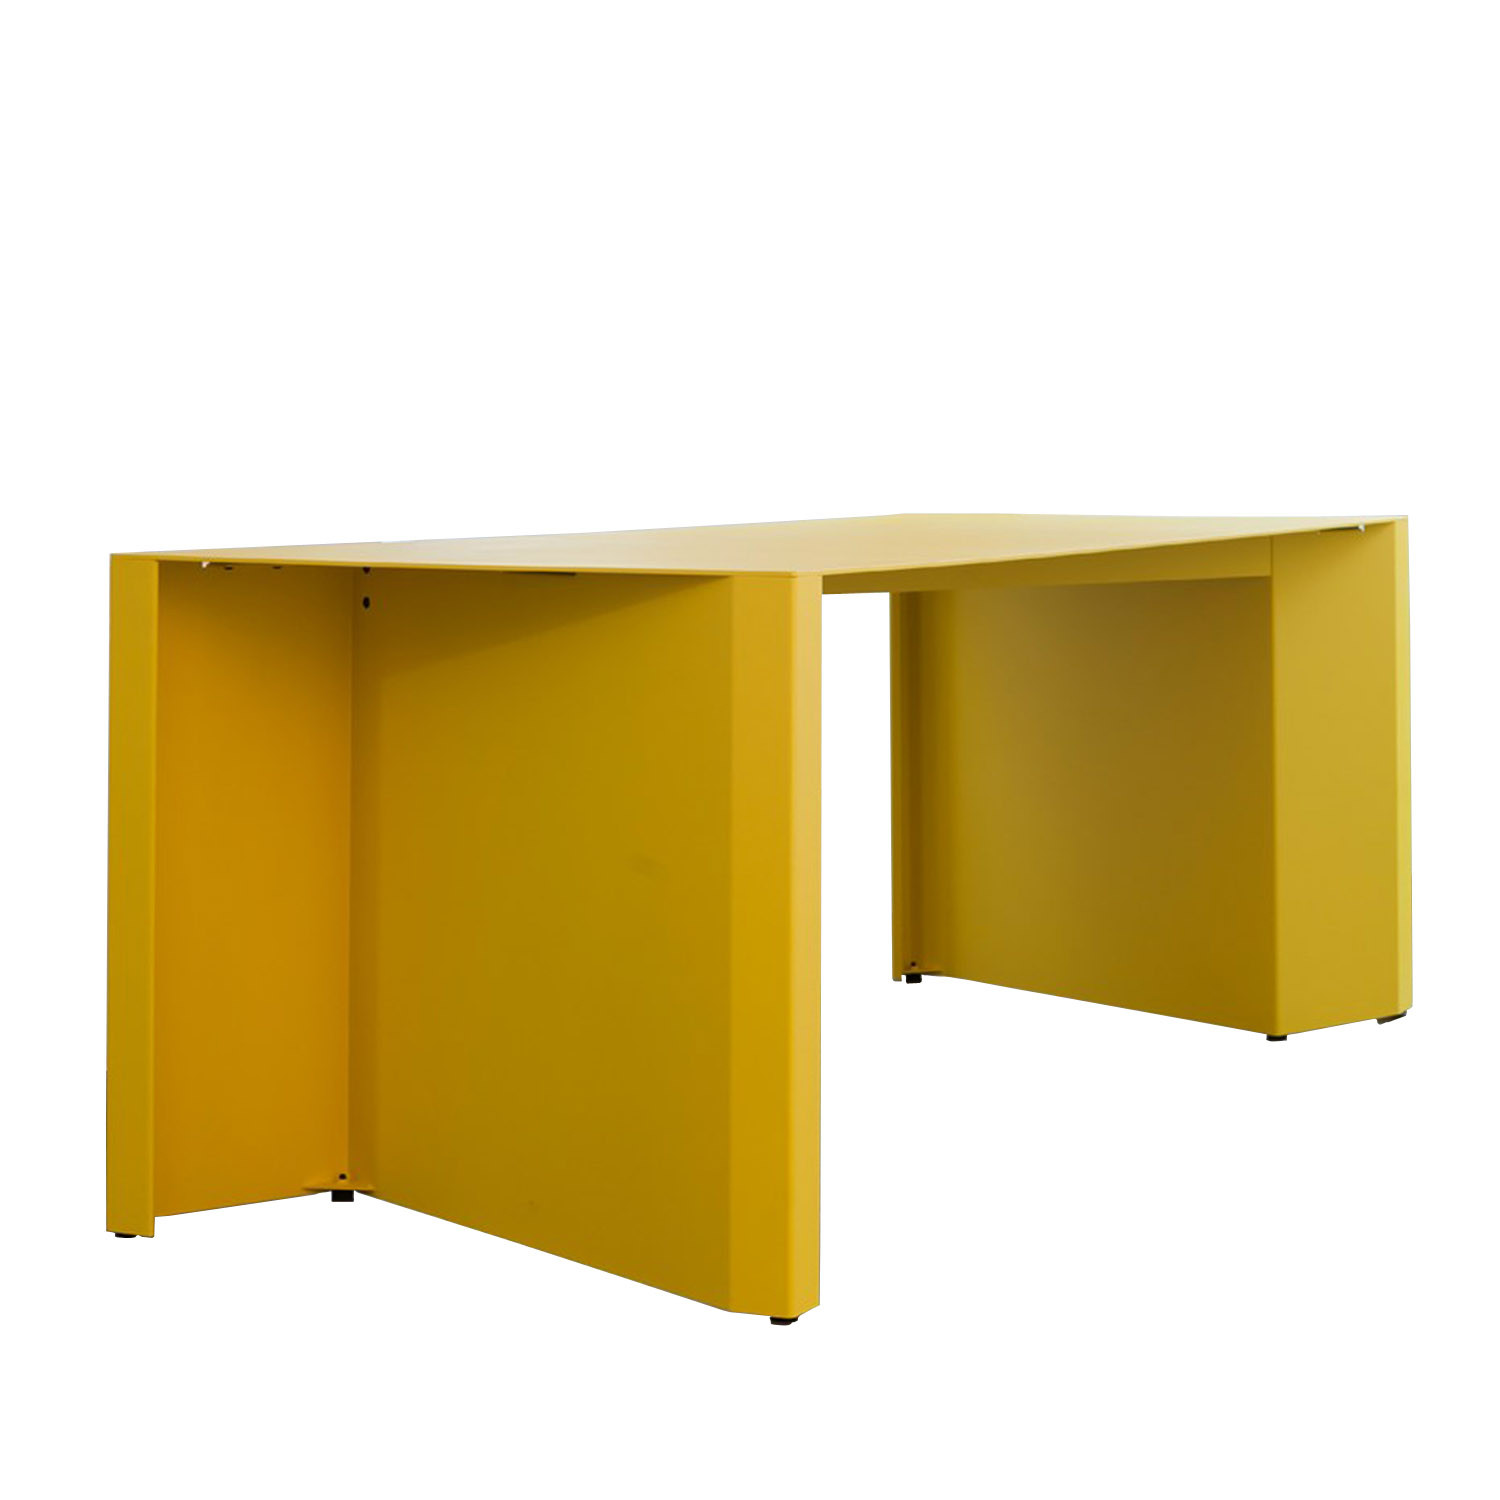 Bataille ibens Yellow Z-Table